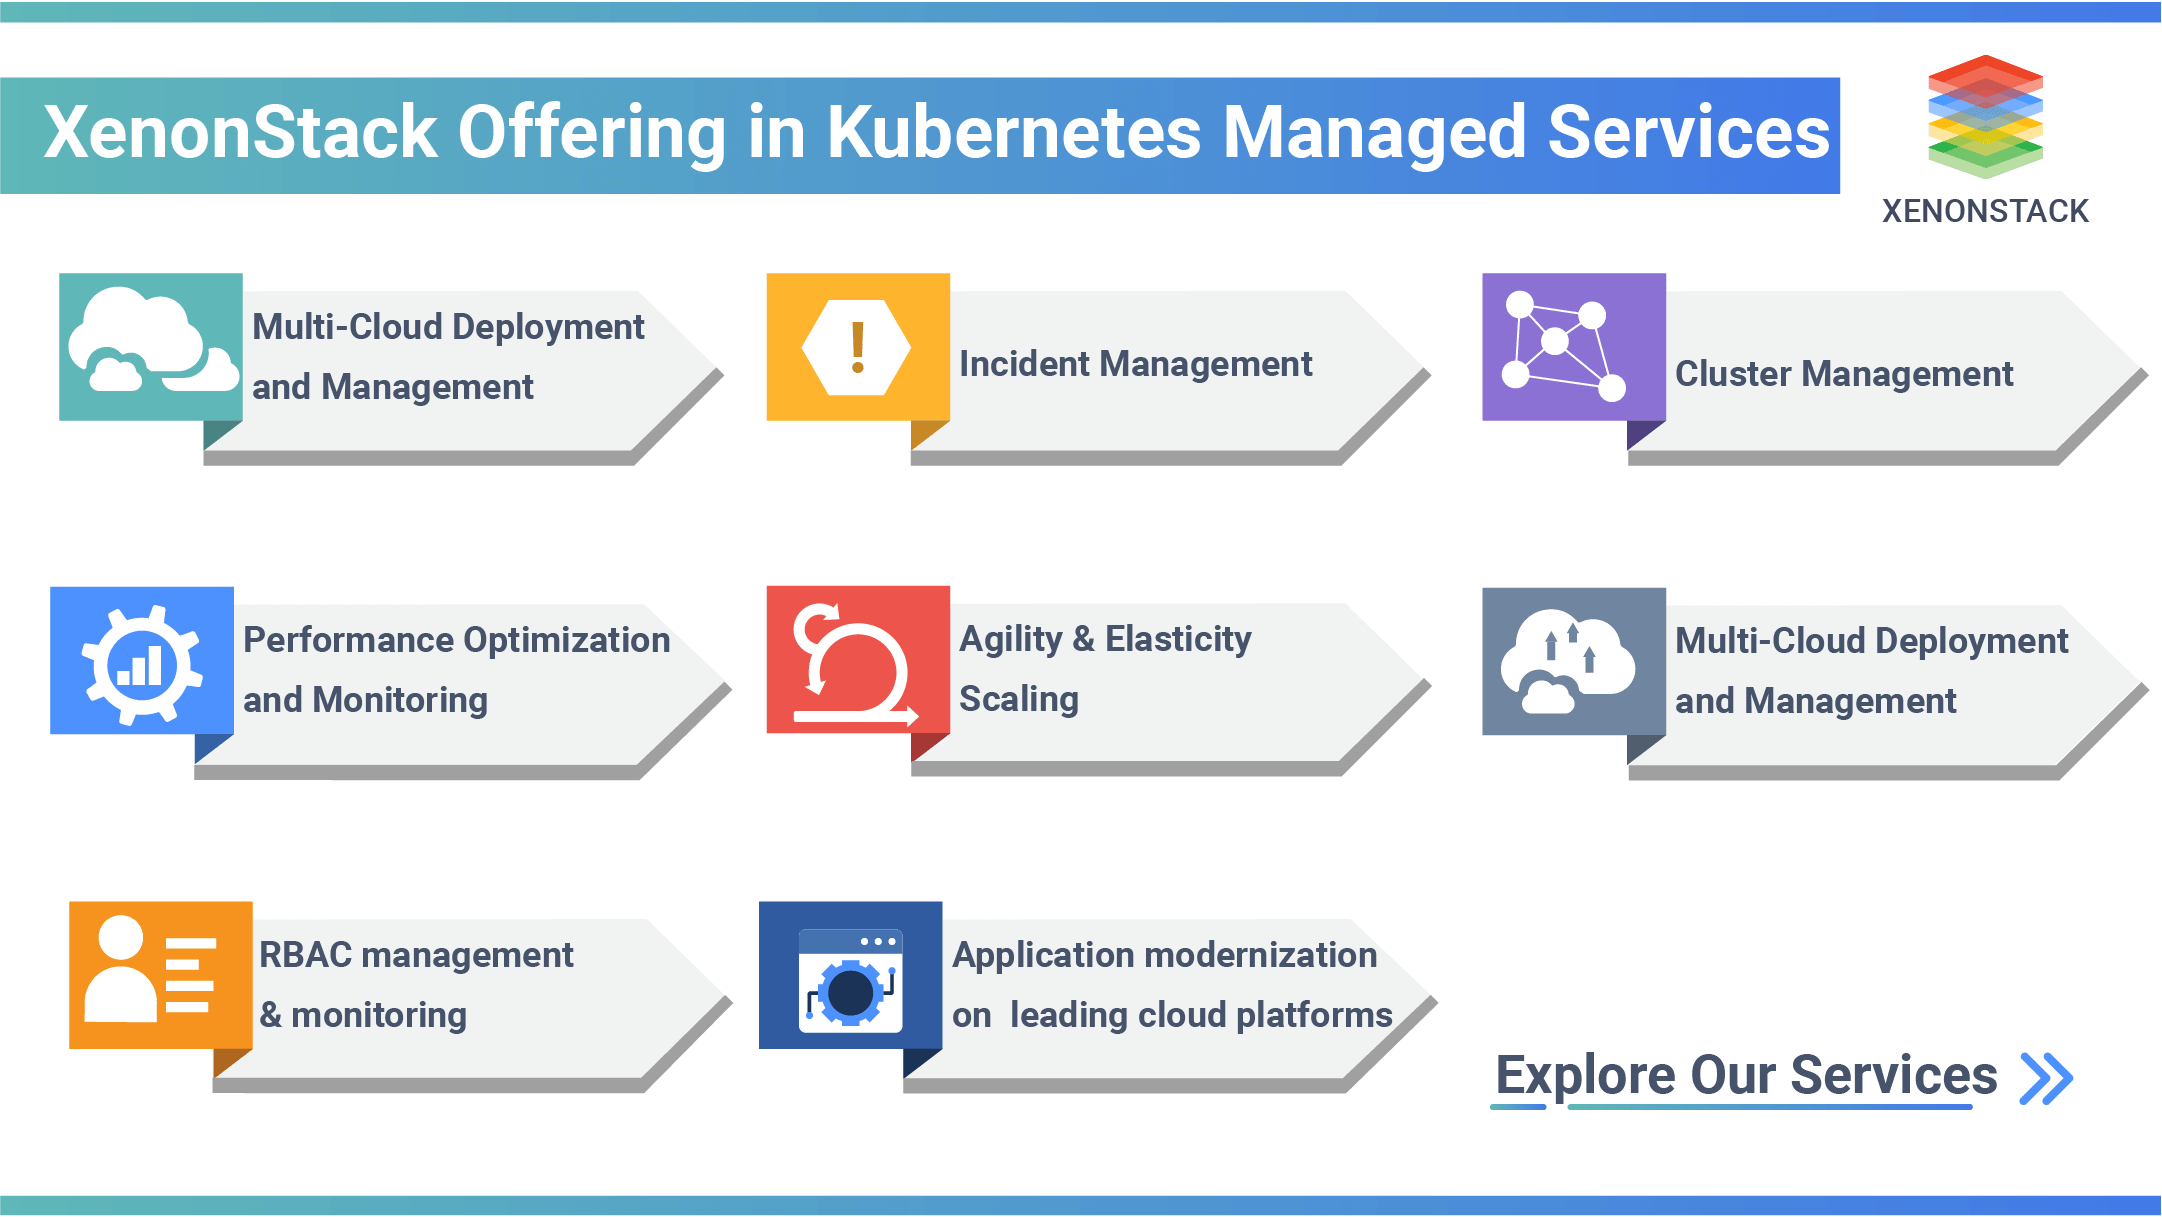 XenonStack's offering in Kubernetes Managed Services